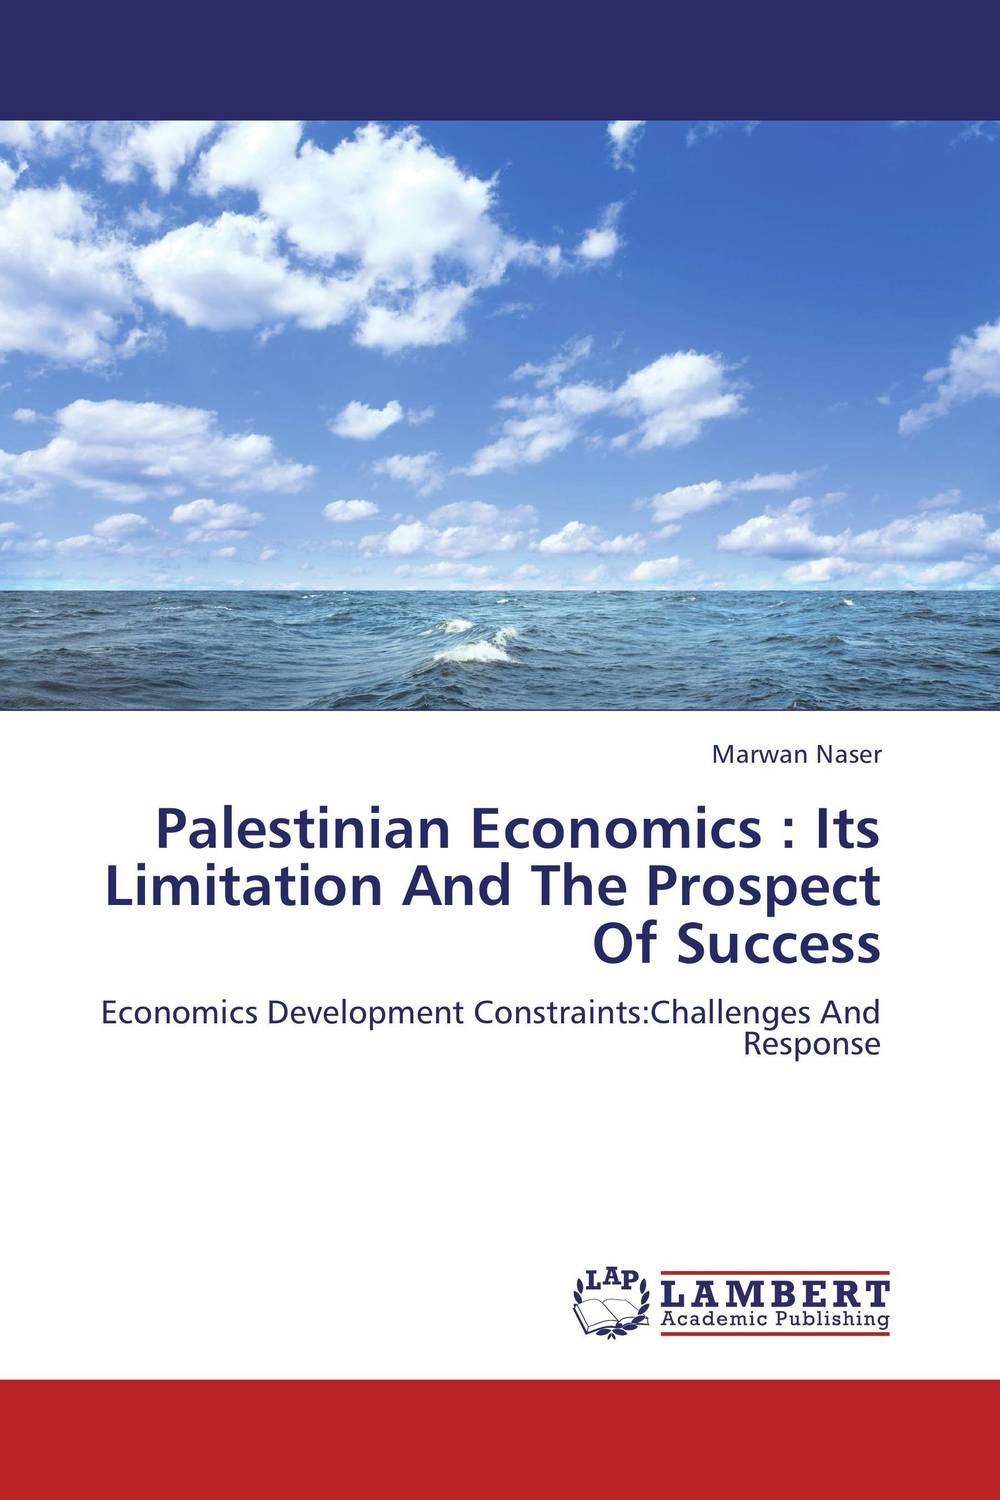 Palestinian Economics : Its Limitation And The Prospect Of Success palestinian economics its limitation and the prospect of success